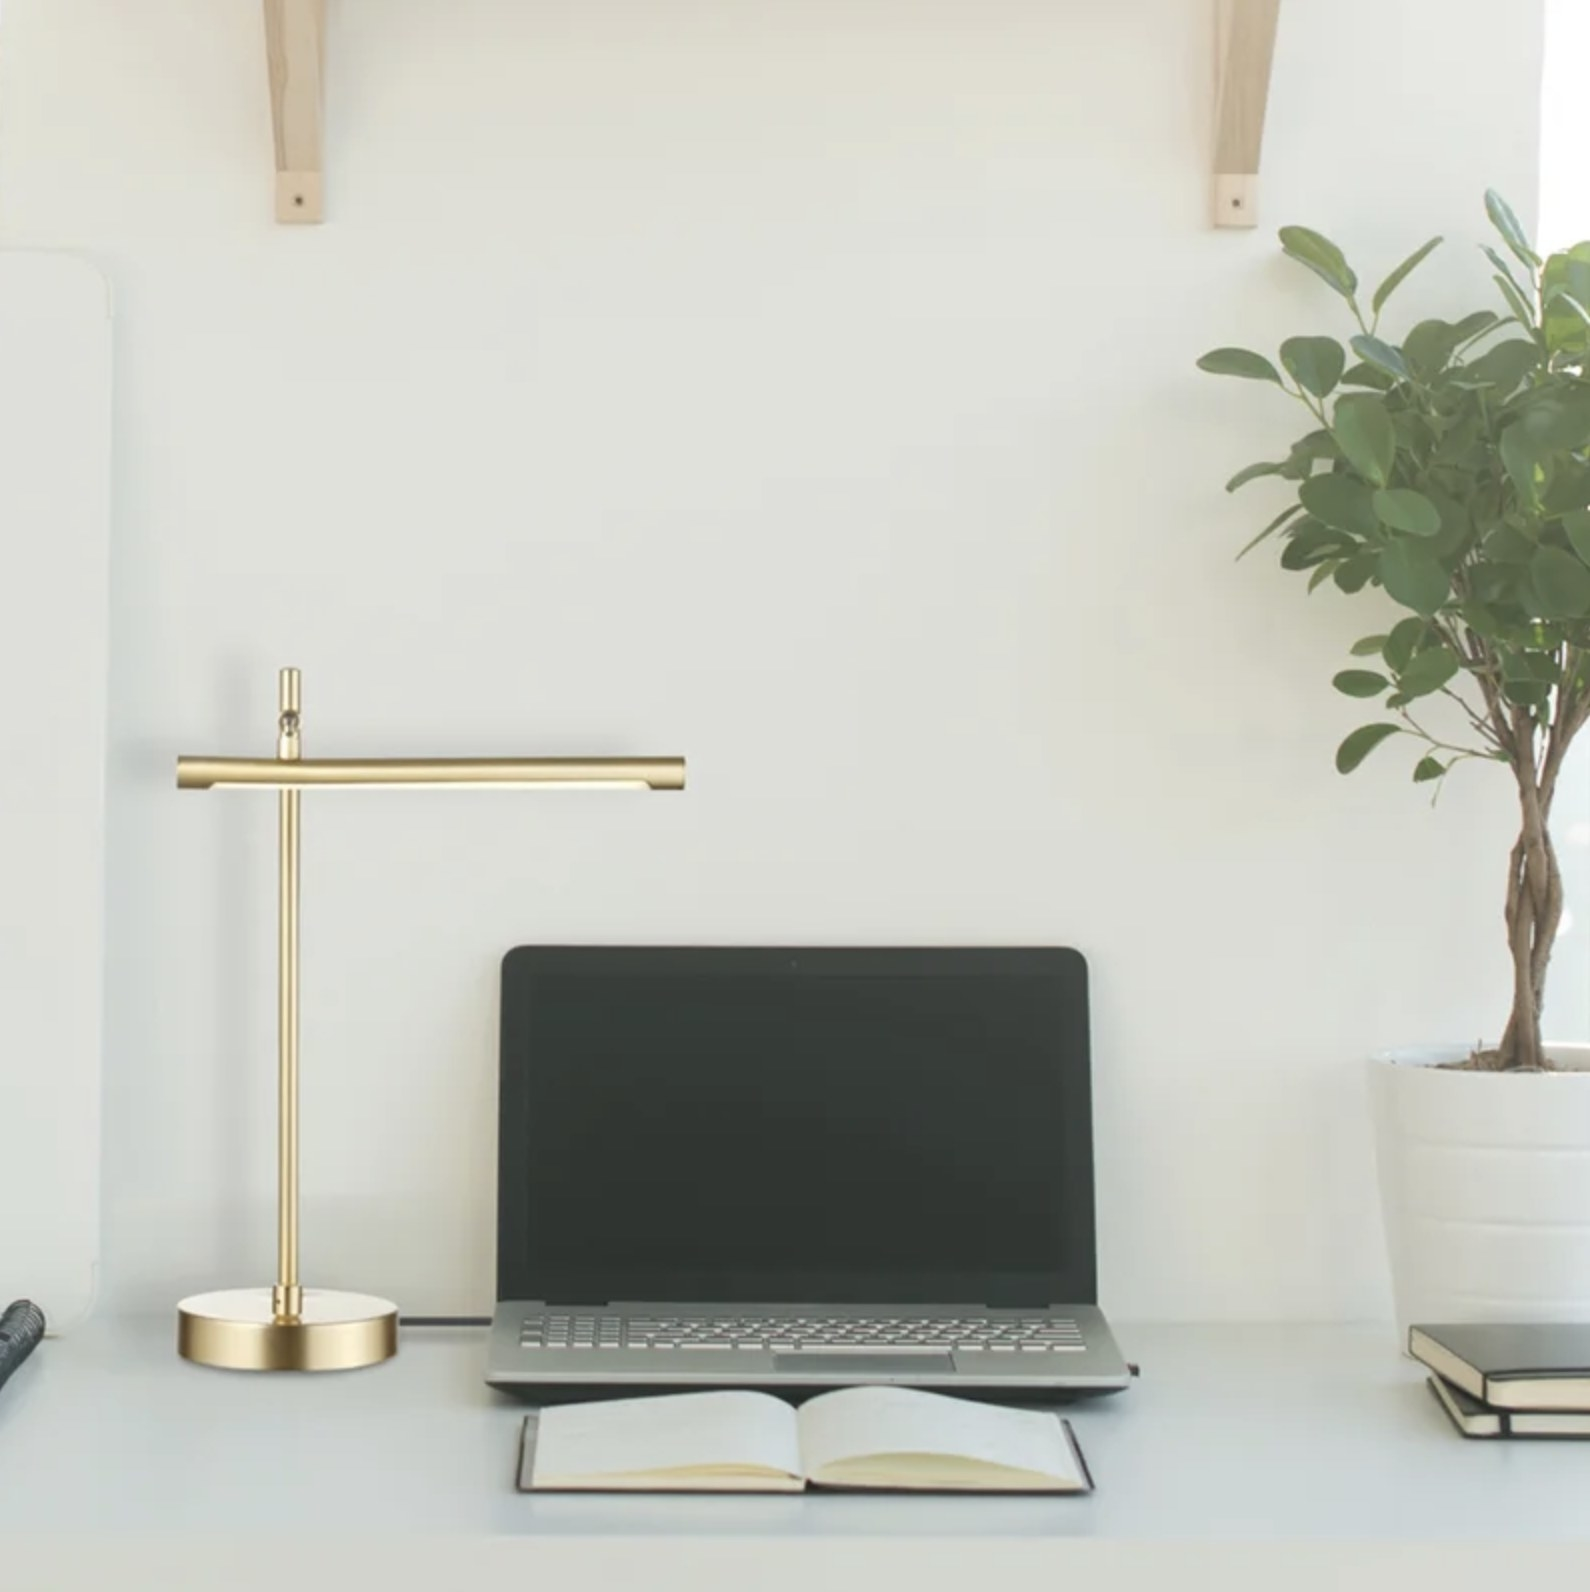 The brass desk lamp next to a laptop